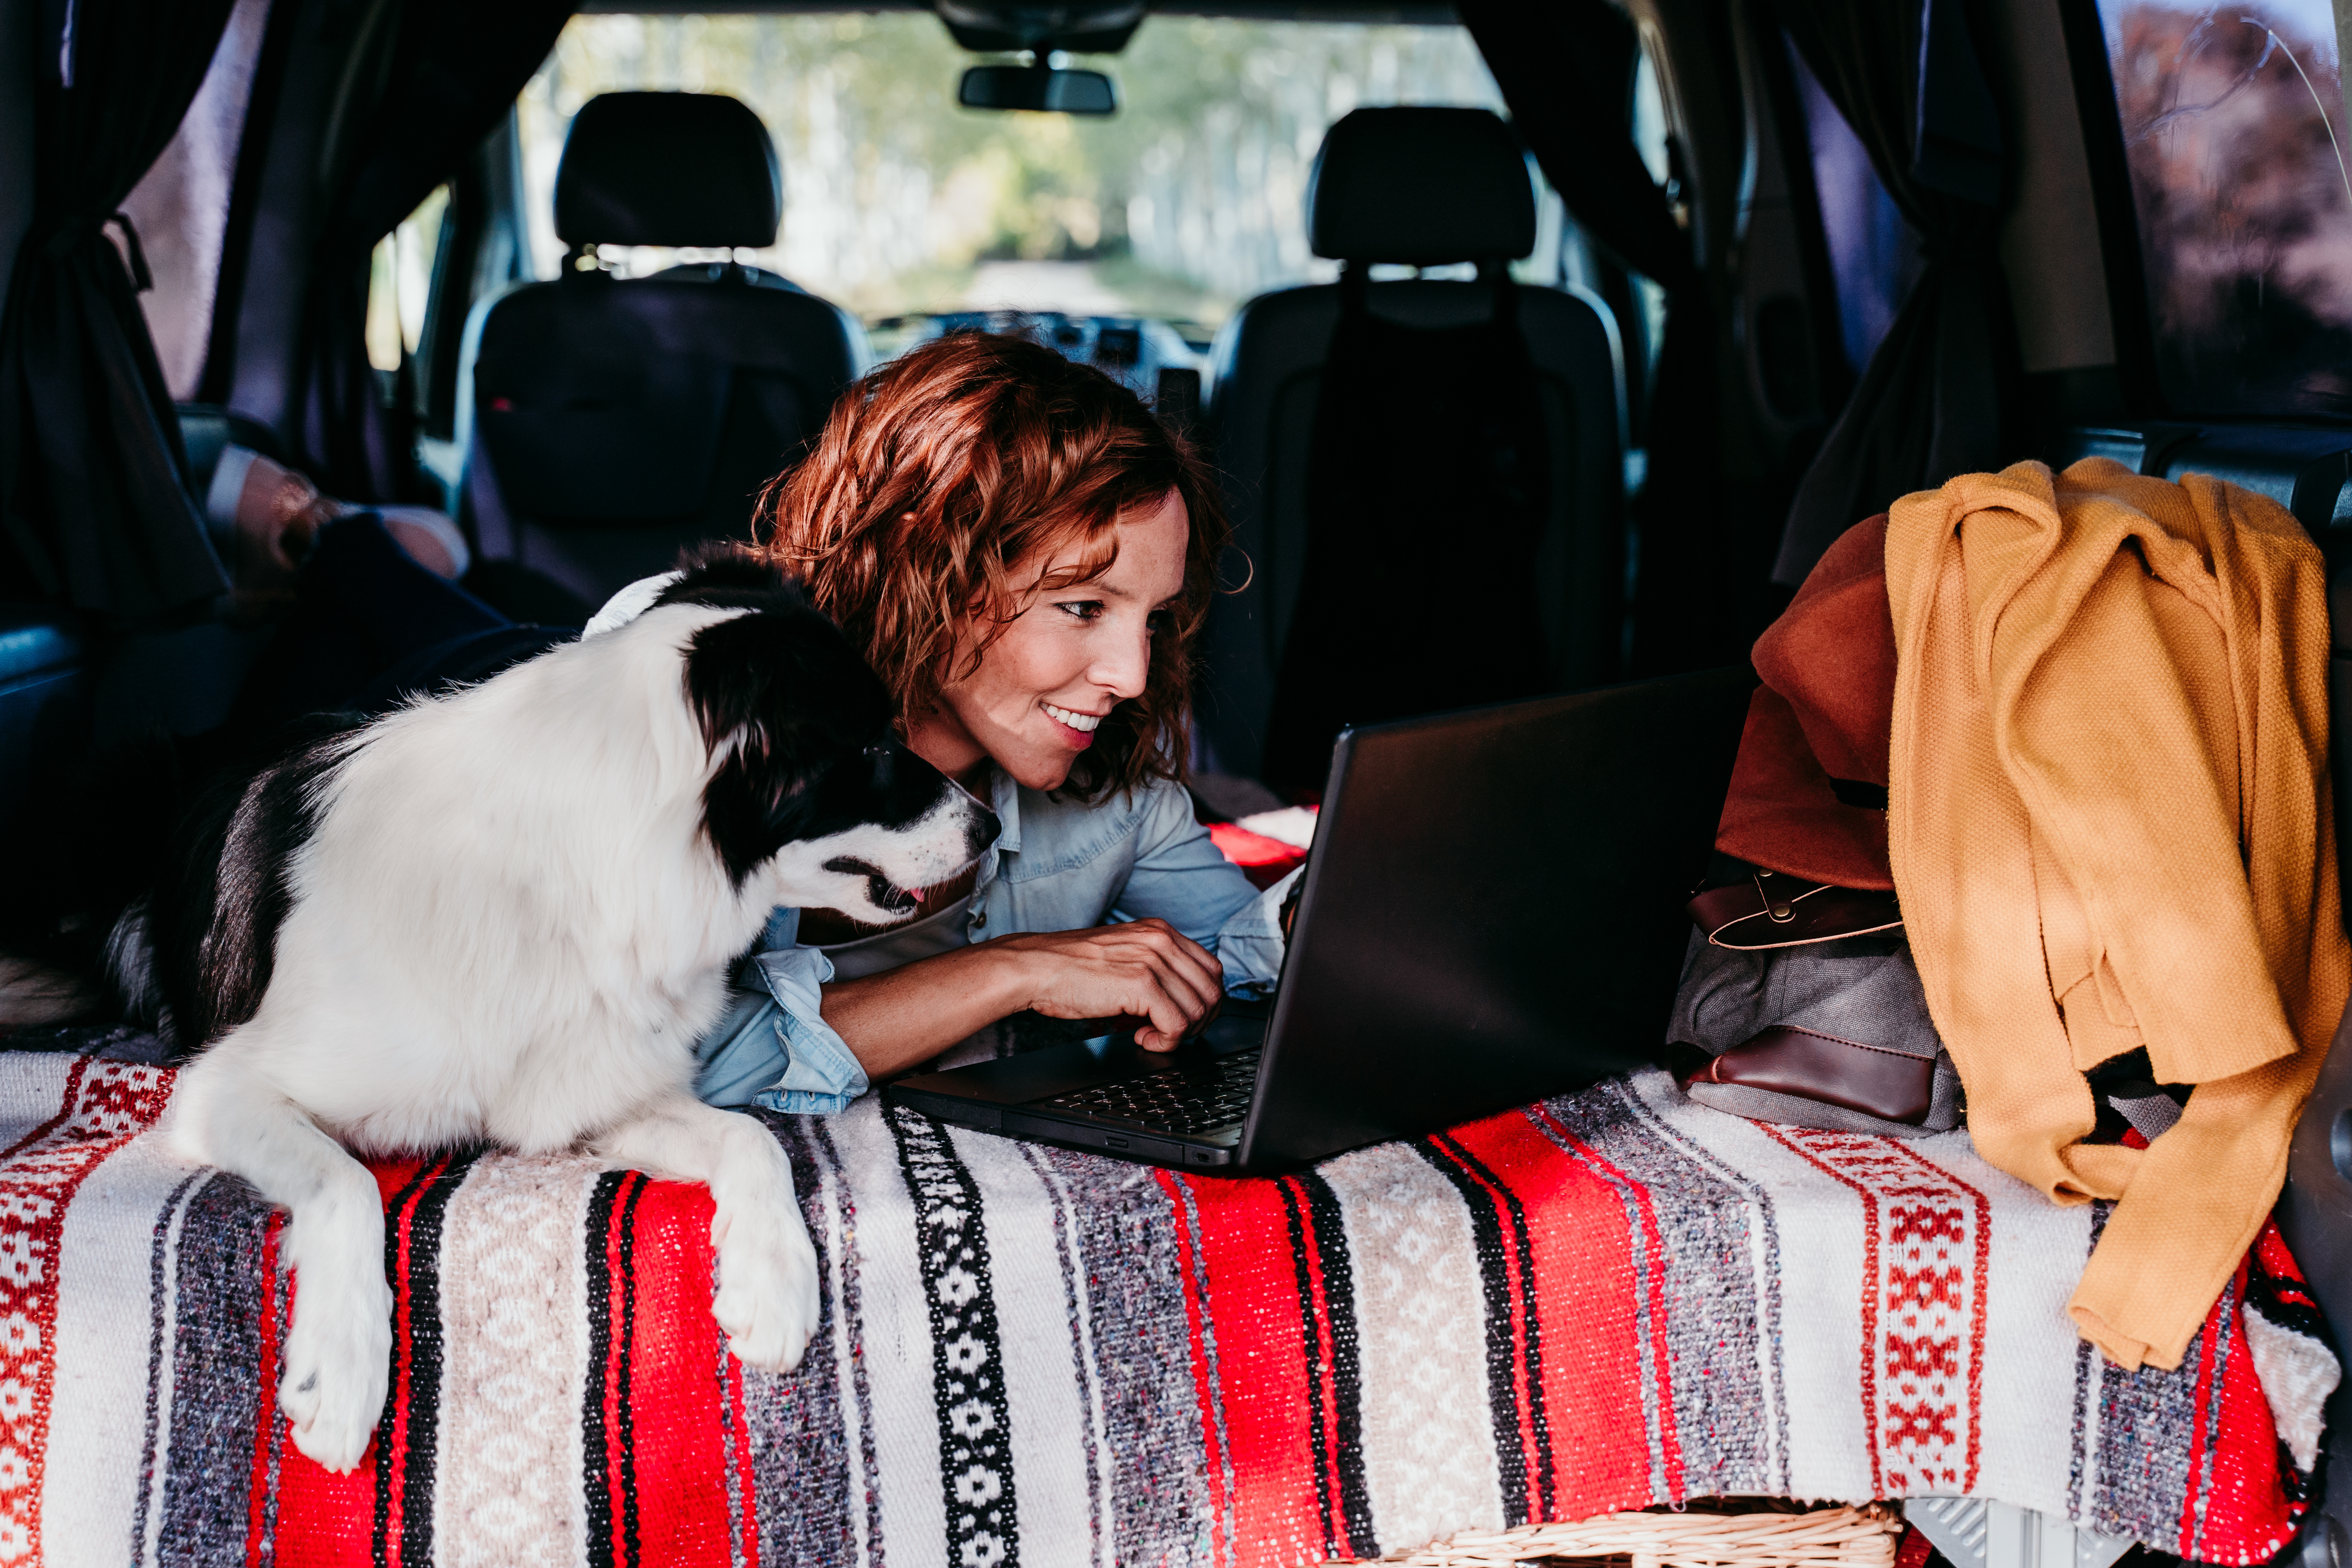 Use your caravan or camper as an office